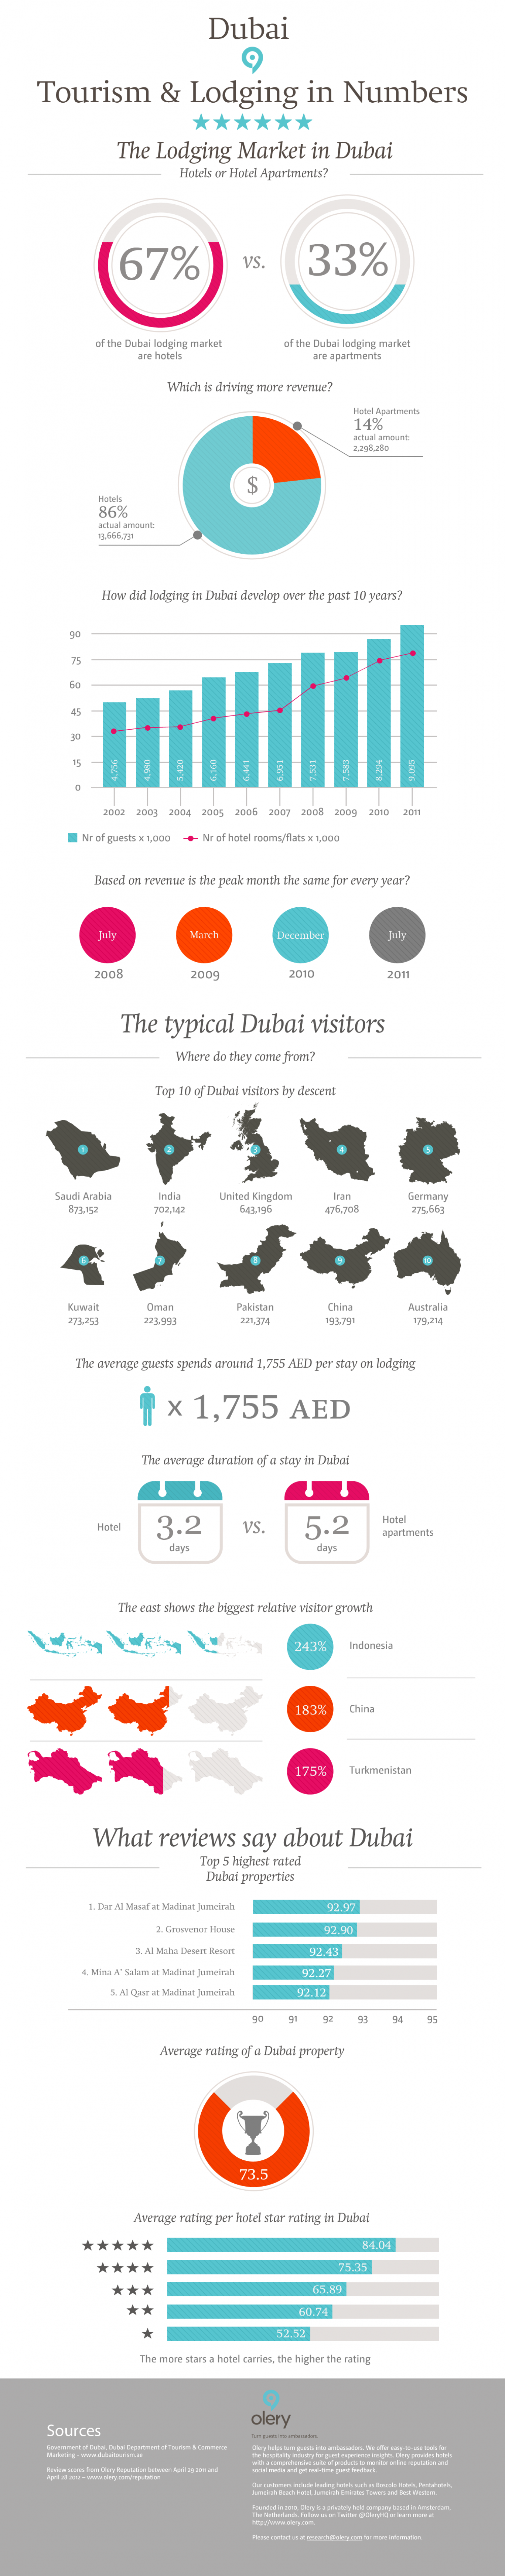 Dubai: Tourism & Lodging in numbers Infographic